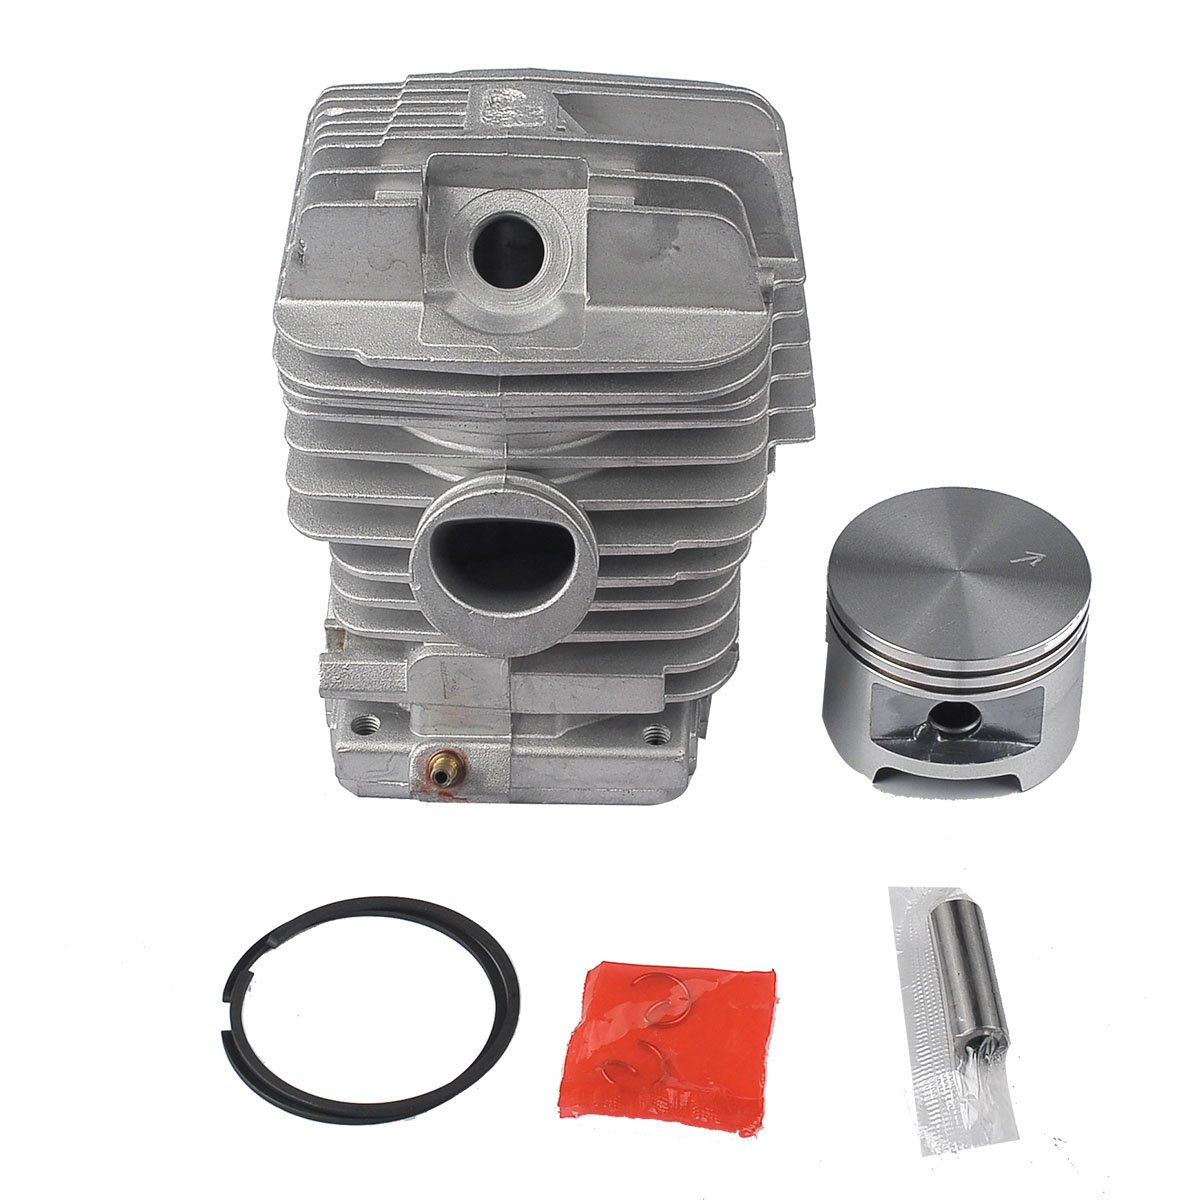 Hipa 49mm Big Bore Cylinder Piston Kits Assy For Stihl 034 Av Chainsaw Parts Diagram On 028 Carb Ms390 Ms290 Ms310 029 039 Pin 10 X 32 Circlip Ring Garden Outdoor